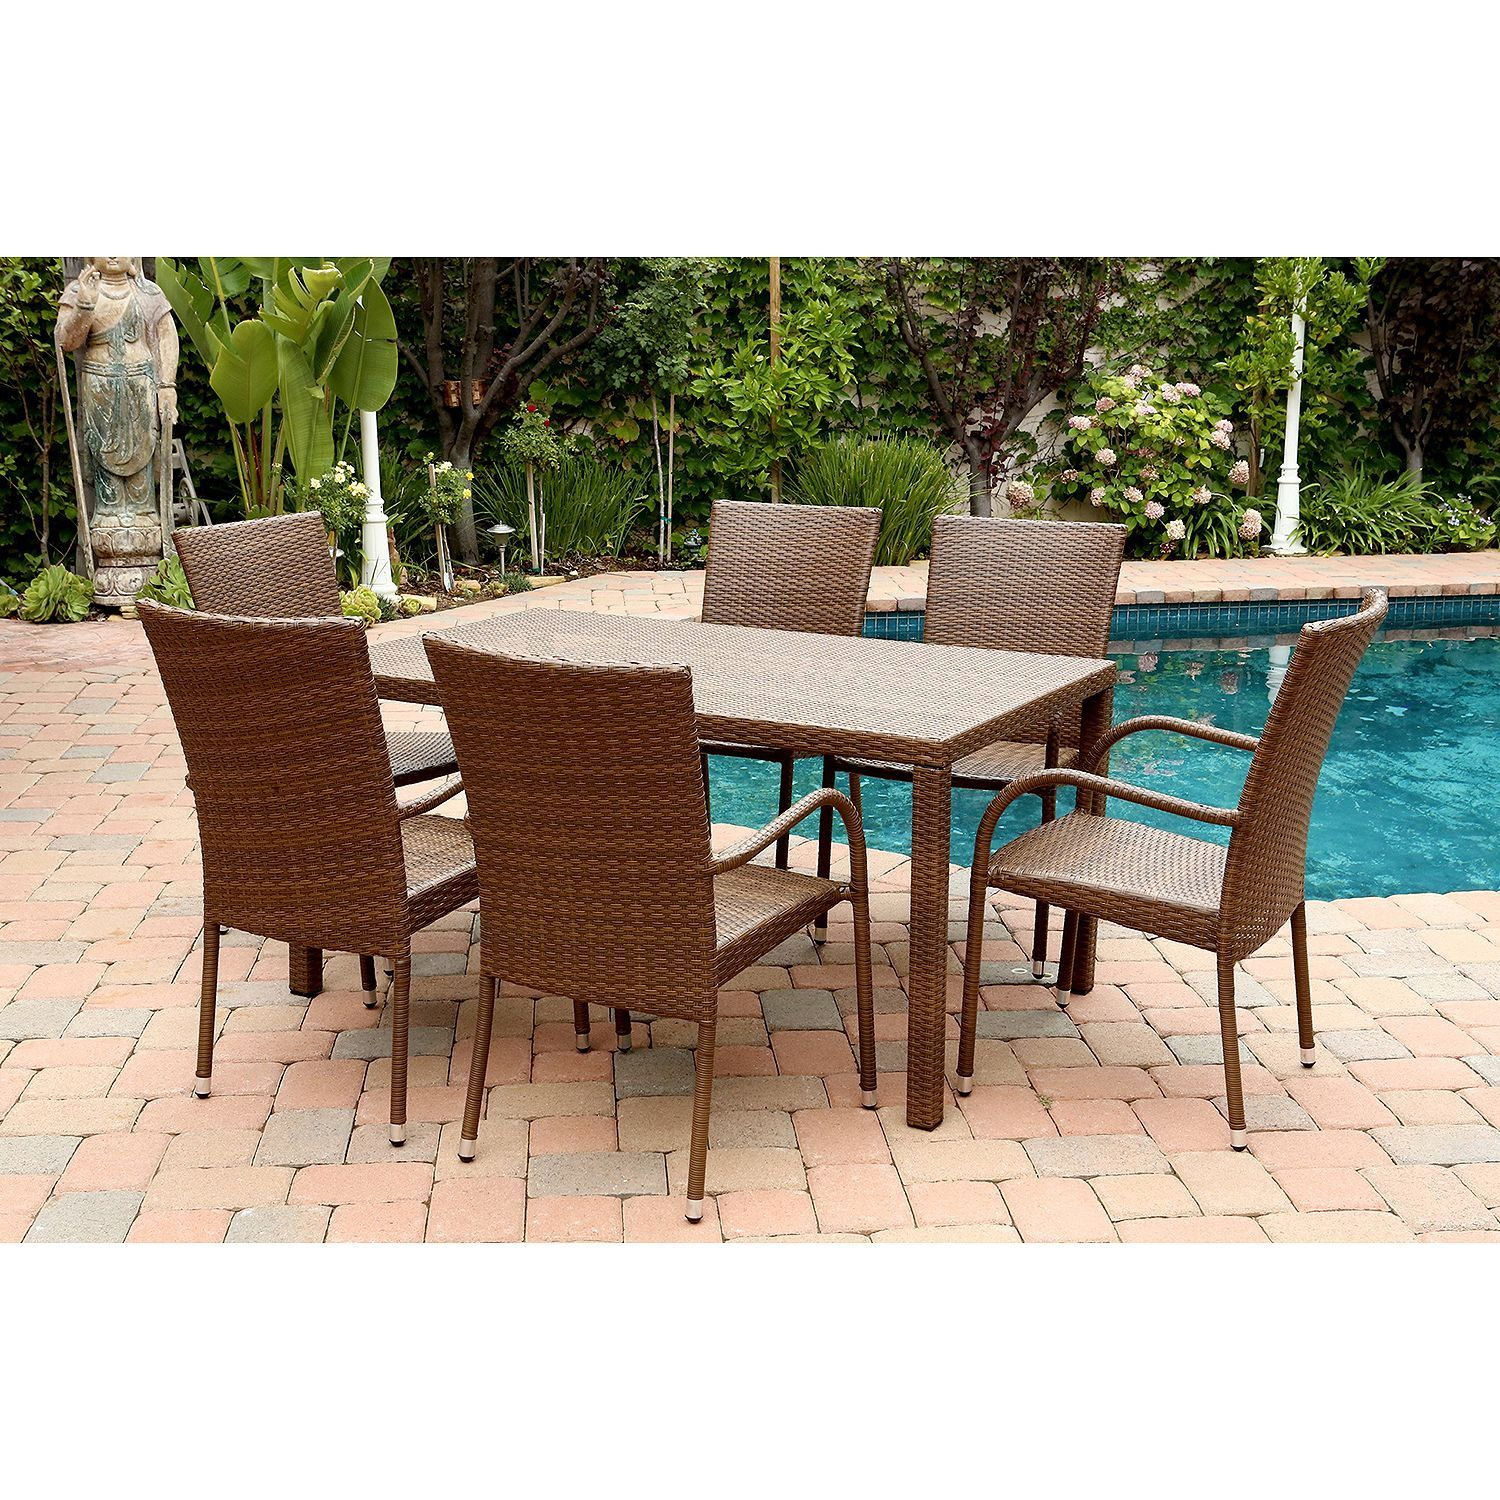 Madison Collection Extendable Teak Wood 9 Piece Dining Set In 2019